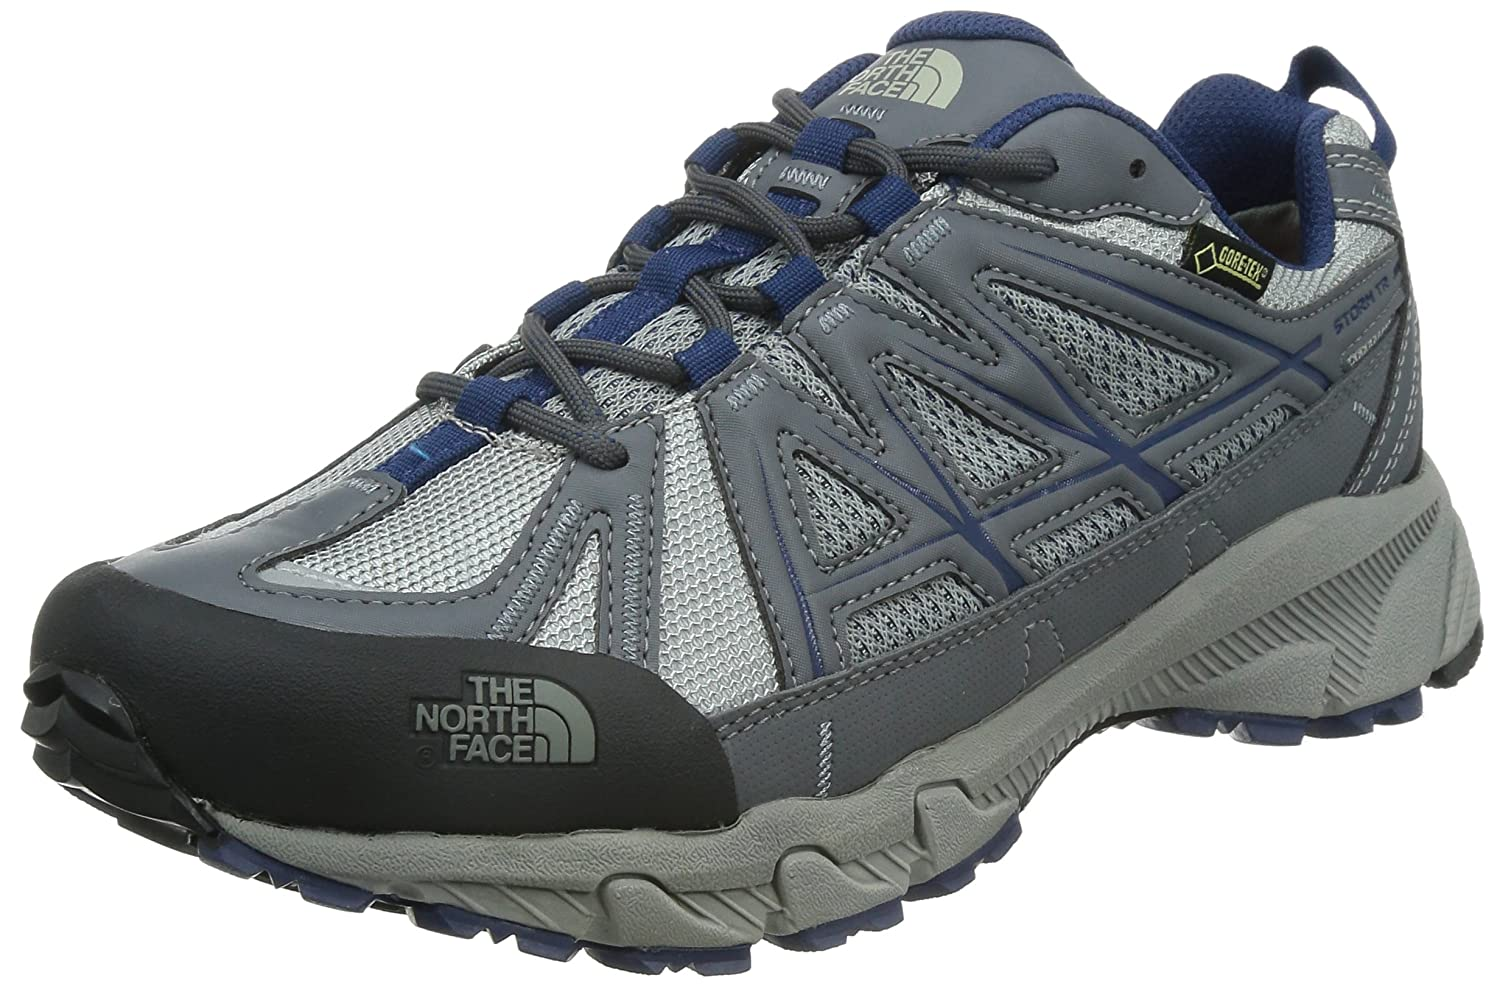 THE NORTH FACE 北面 男 徒步鞋  CLW6